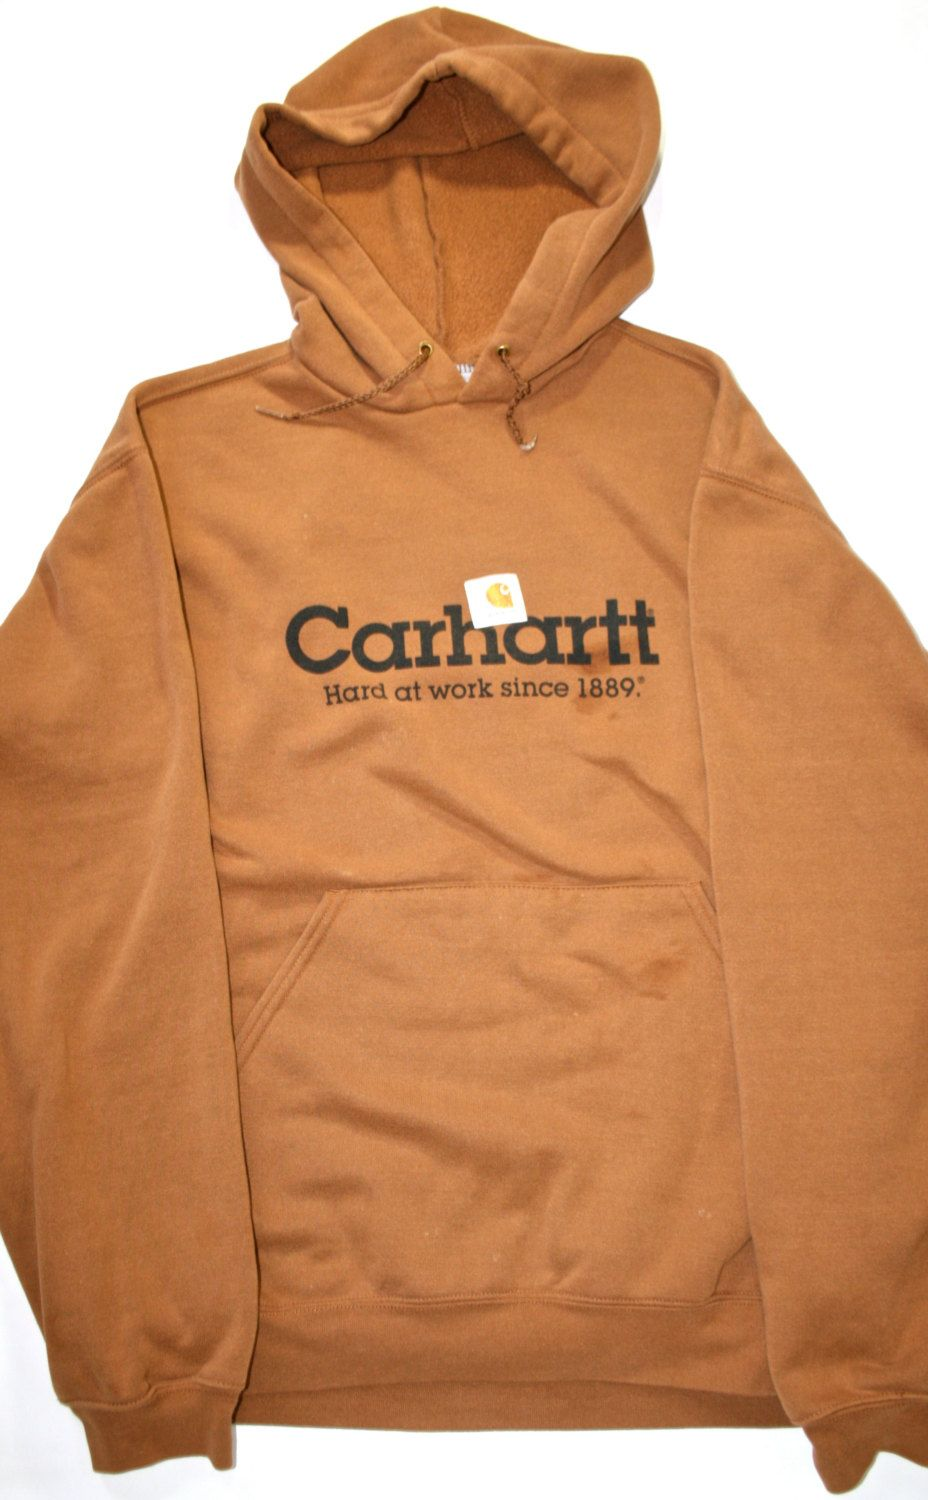 89bc5be6fda Vintage Carhartt Workwear Sweatshirt Mens Size XL.  28.00